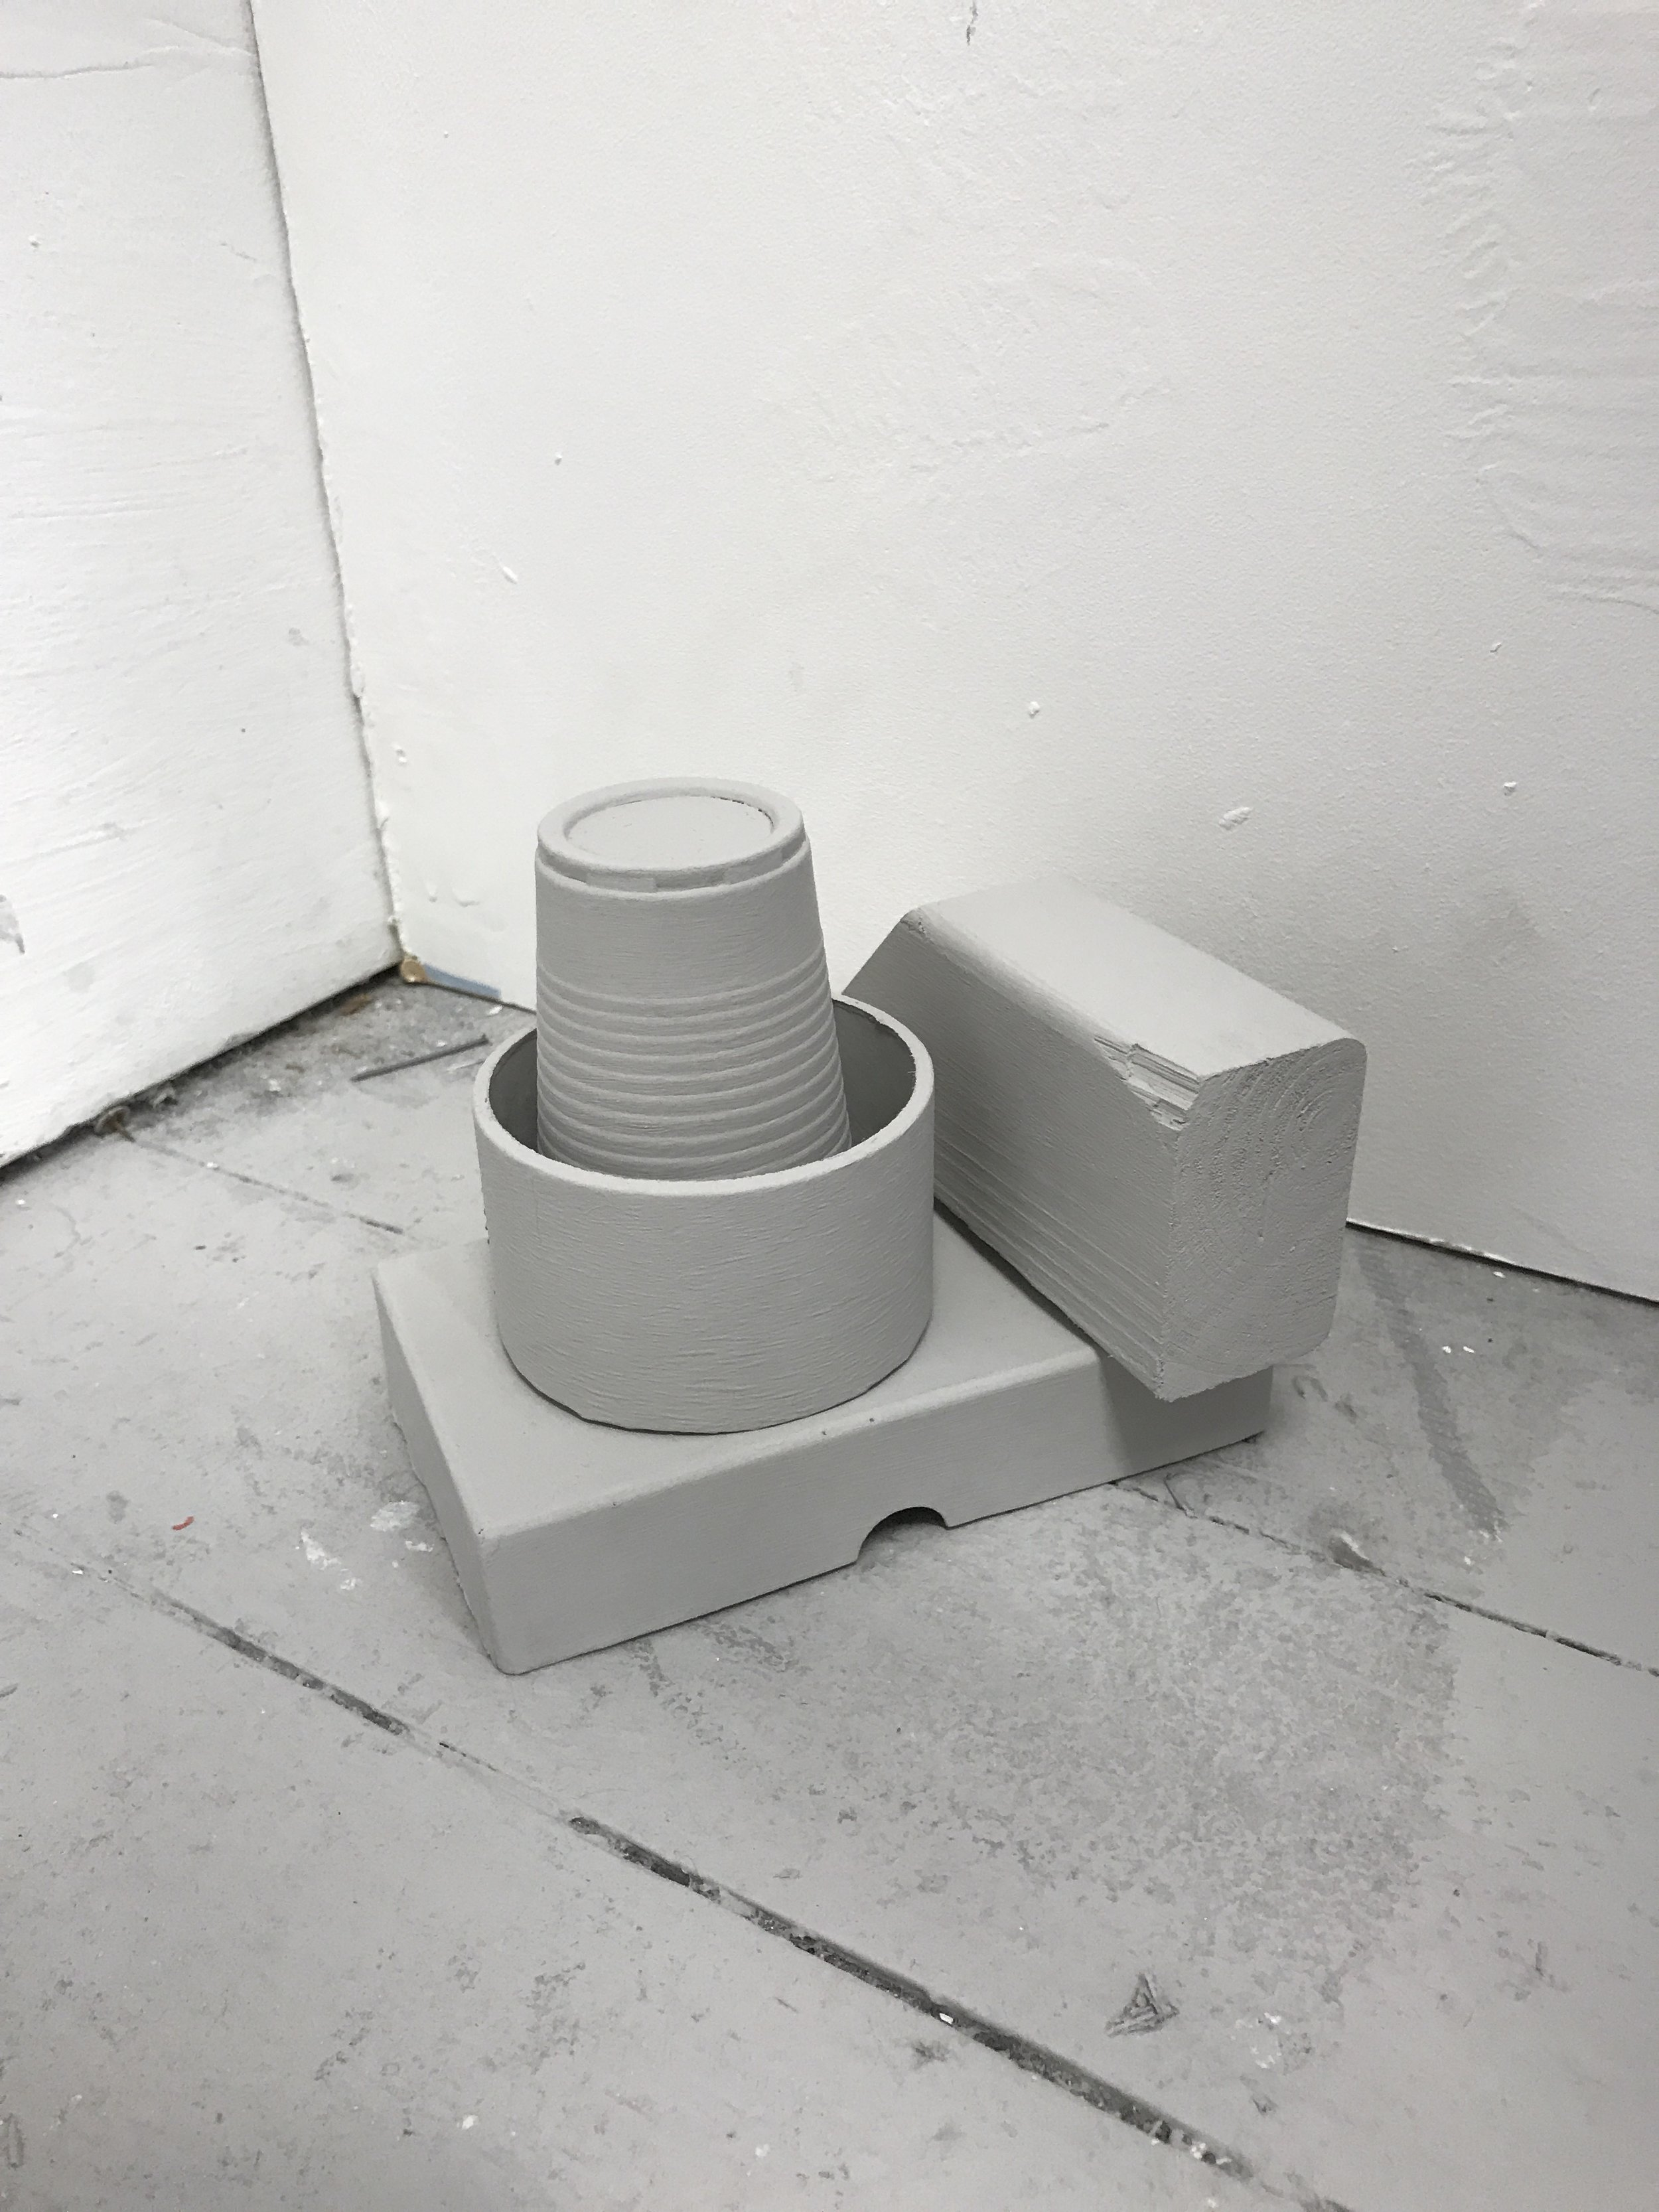 Ally McGinn (2017) [Studio documentation].Normalising objects, equalising form, exploring hierarchy.